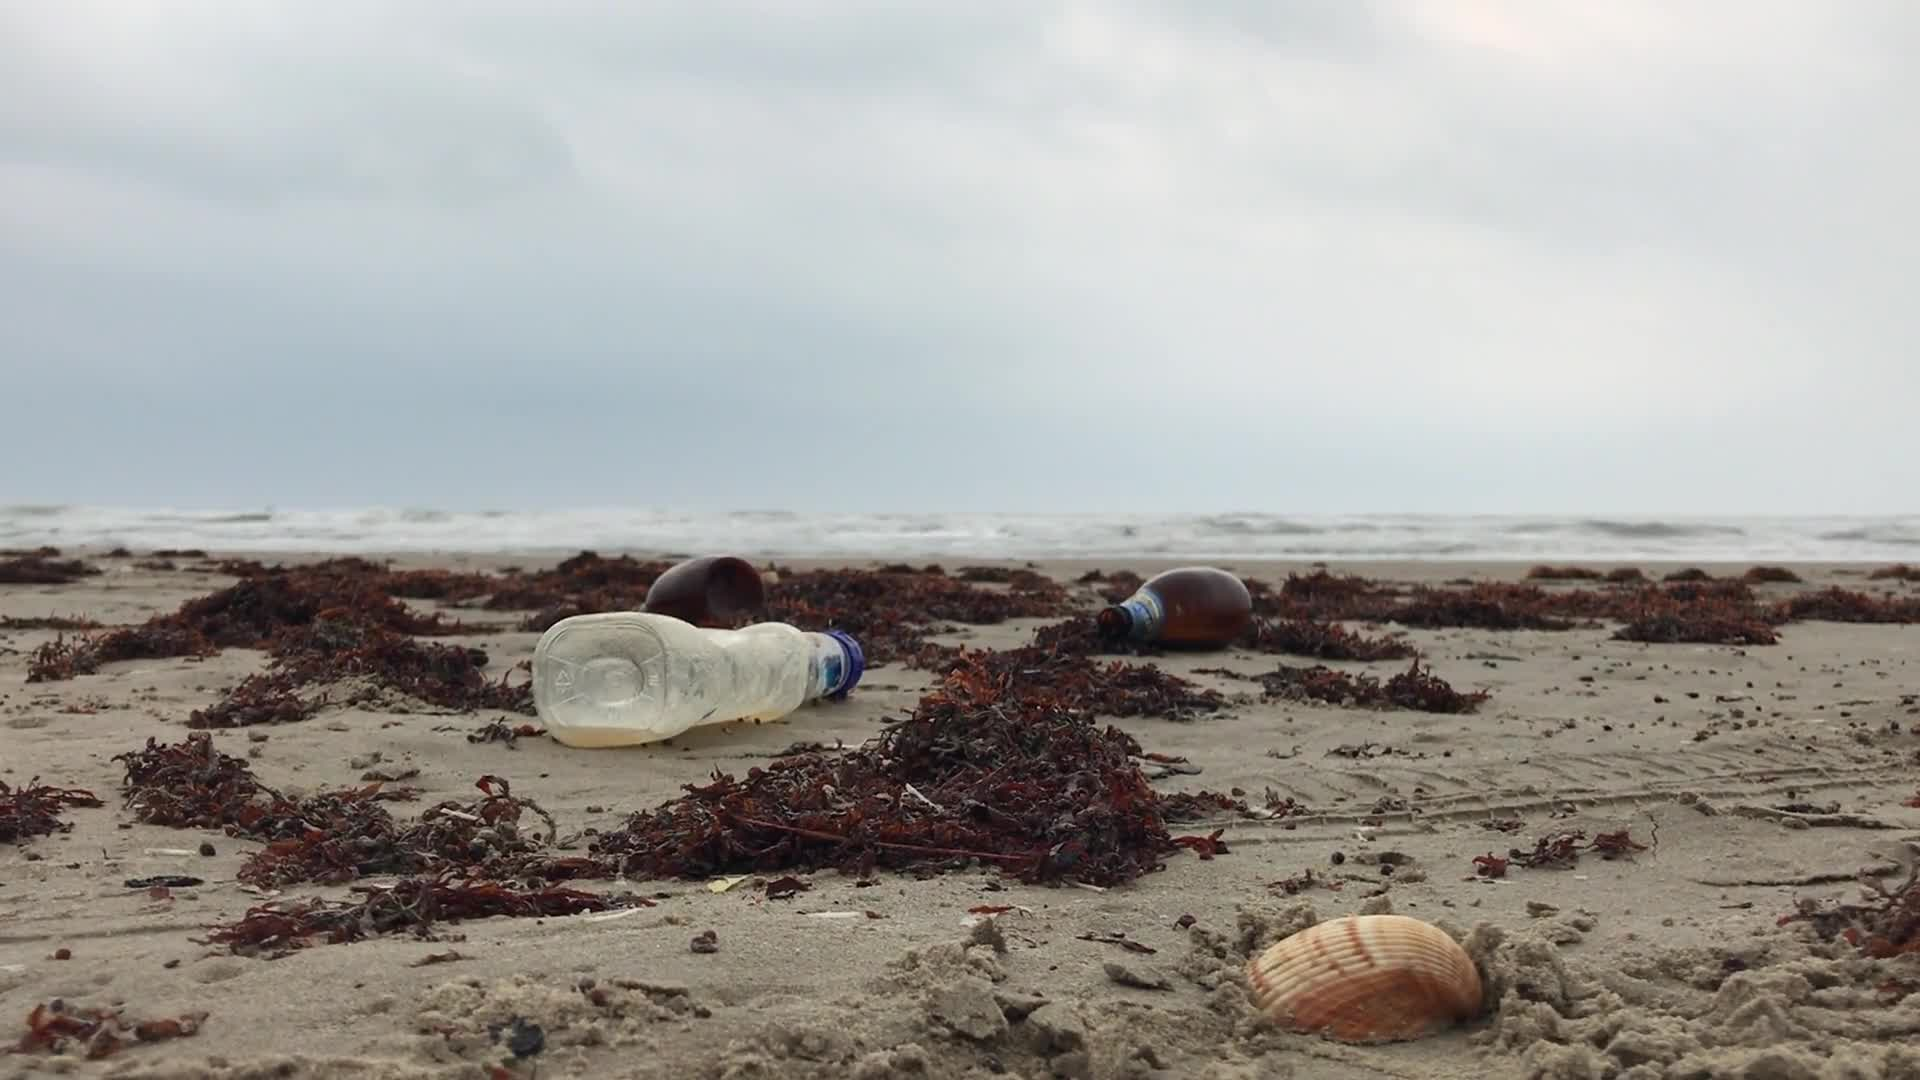 Empty bottles on shore